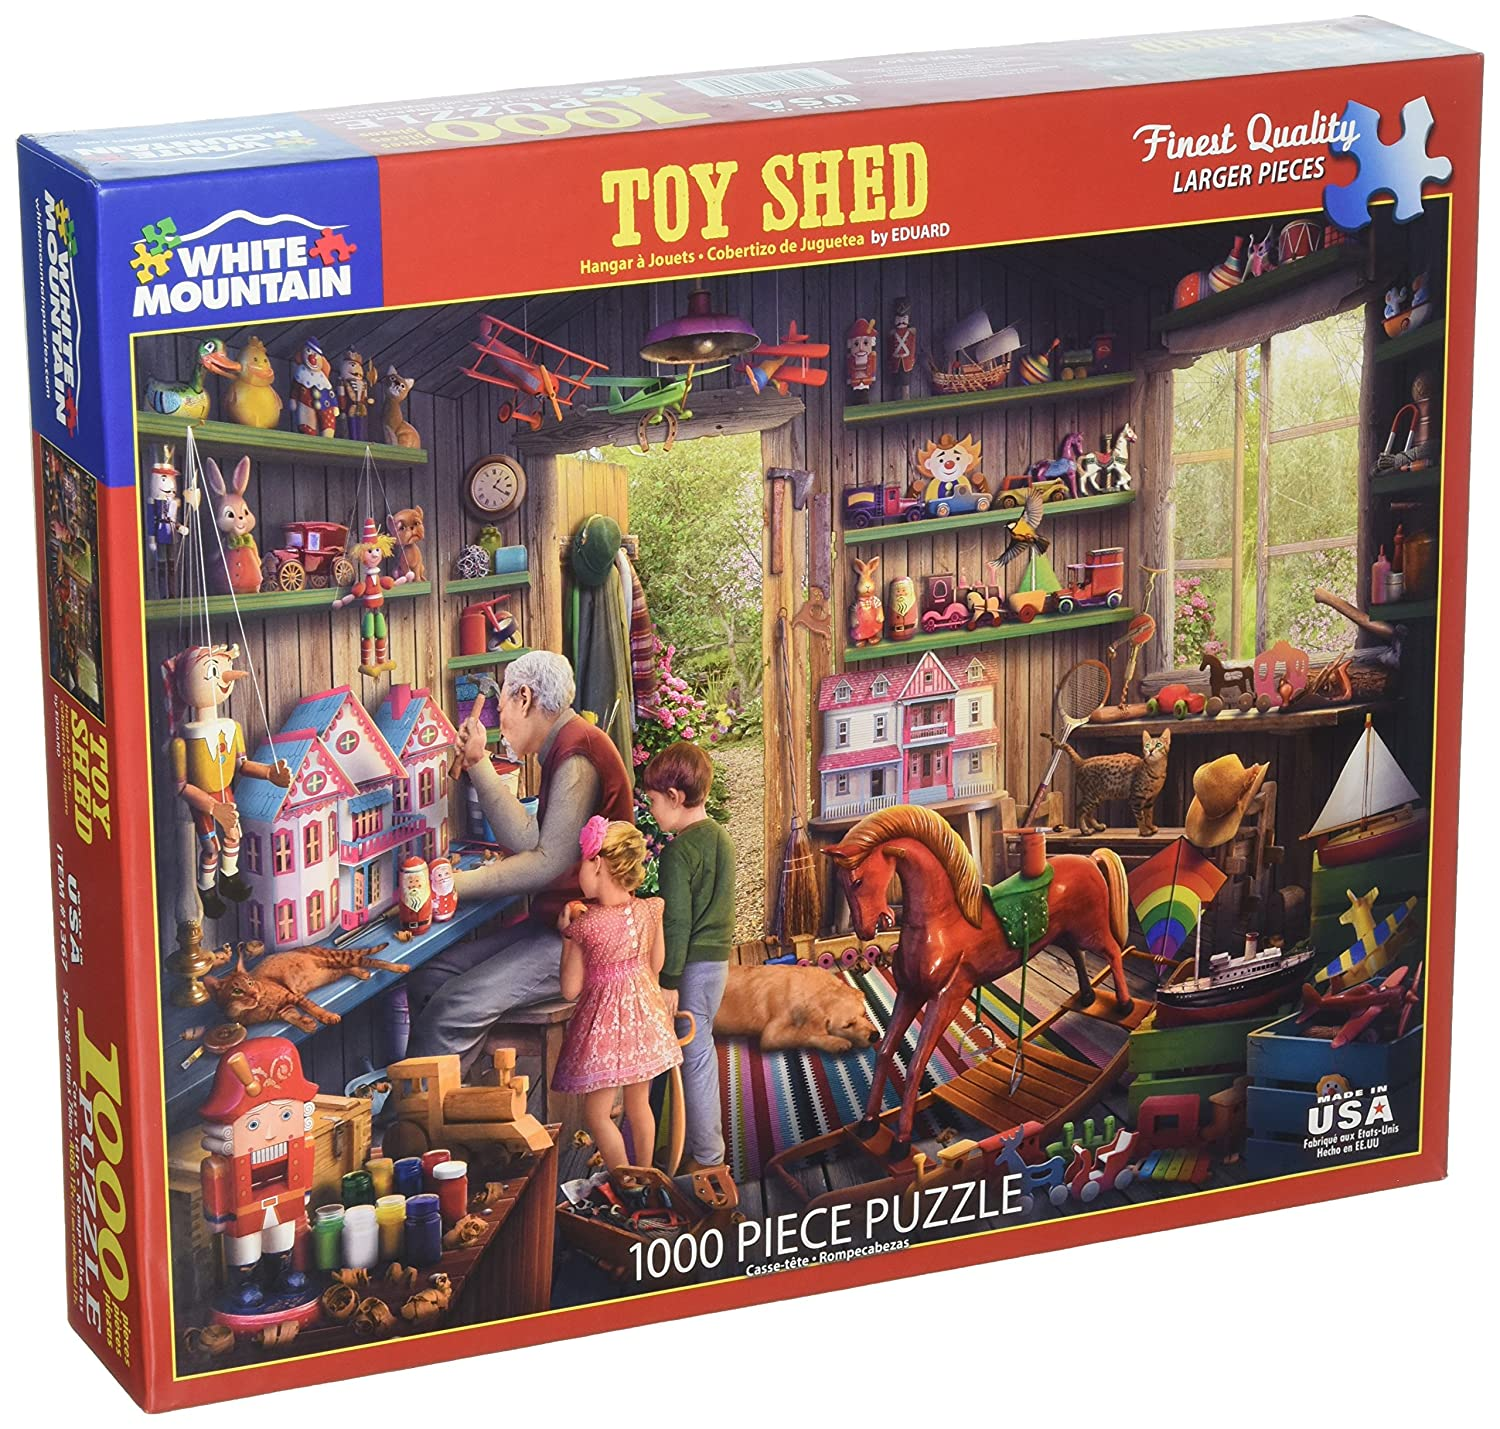 Amazon.com: White Mountain Puzzles Toy Shed - 1000 Piece Jigsaw Puzzle: Toys & Games